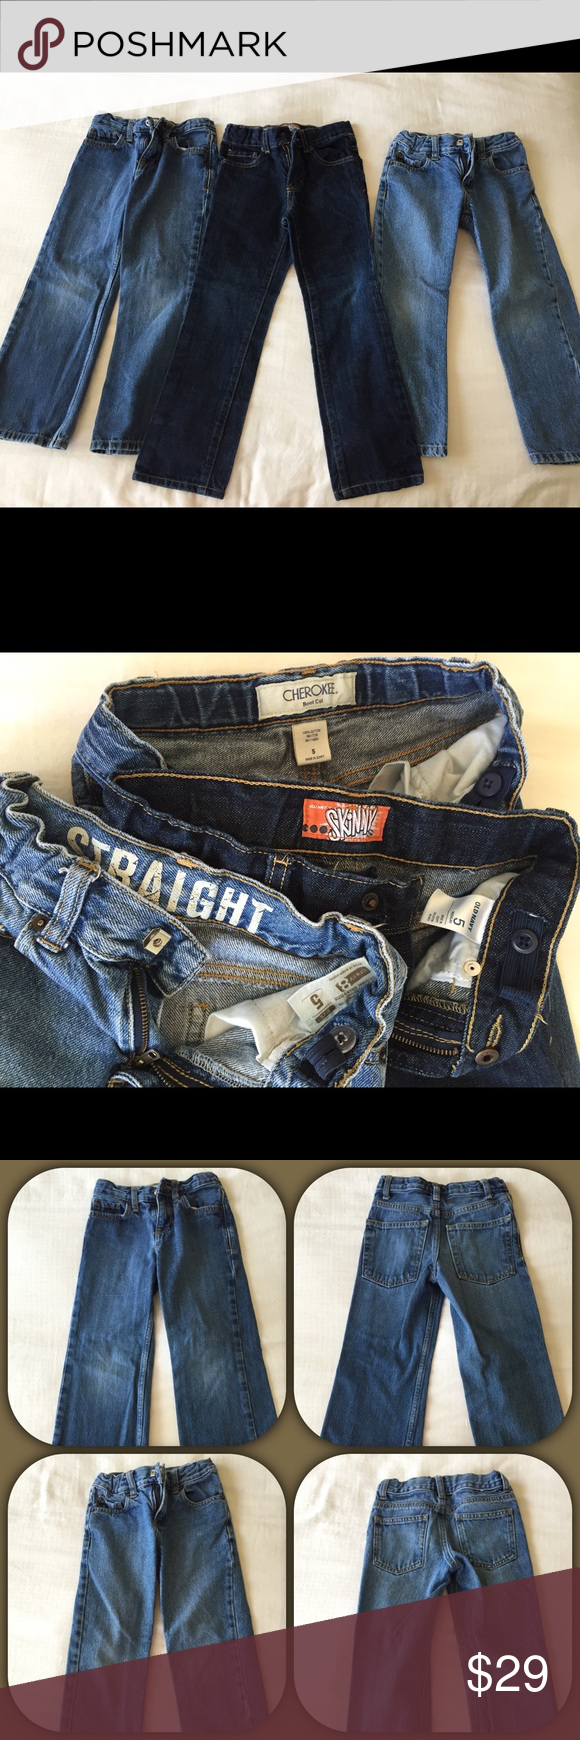 Boys Size 5 jeans. Old Navy, Crazy 8, Cherokee Boy's Size 5 Jeans Lot - 3 Pairs   1. Old Navy 2. Cherokee 3.  Crazy 8  All have adjustable waist  Smoke free, pet free home.   Im always happy to combine purchases for shipping. Thank You!! Old Navy Bottoms Jeans